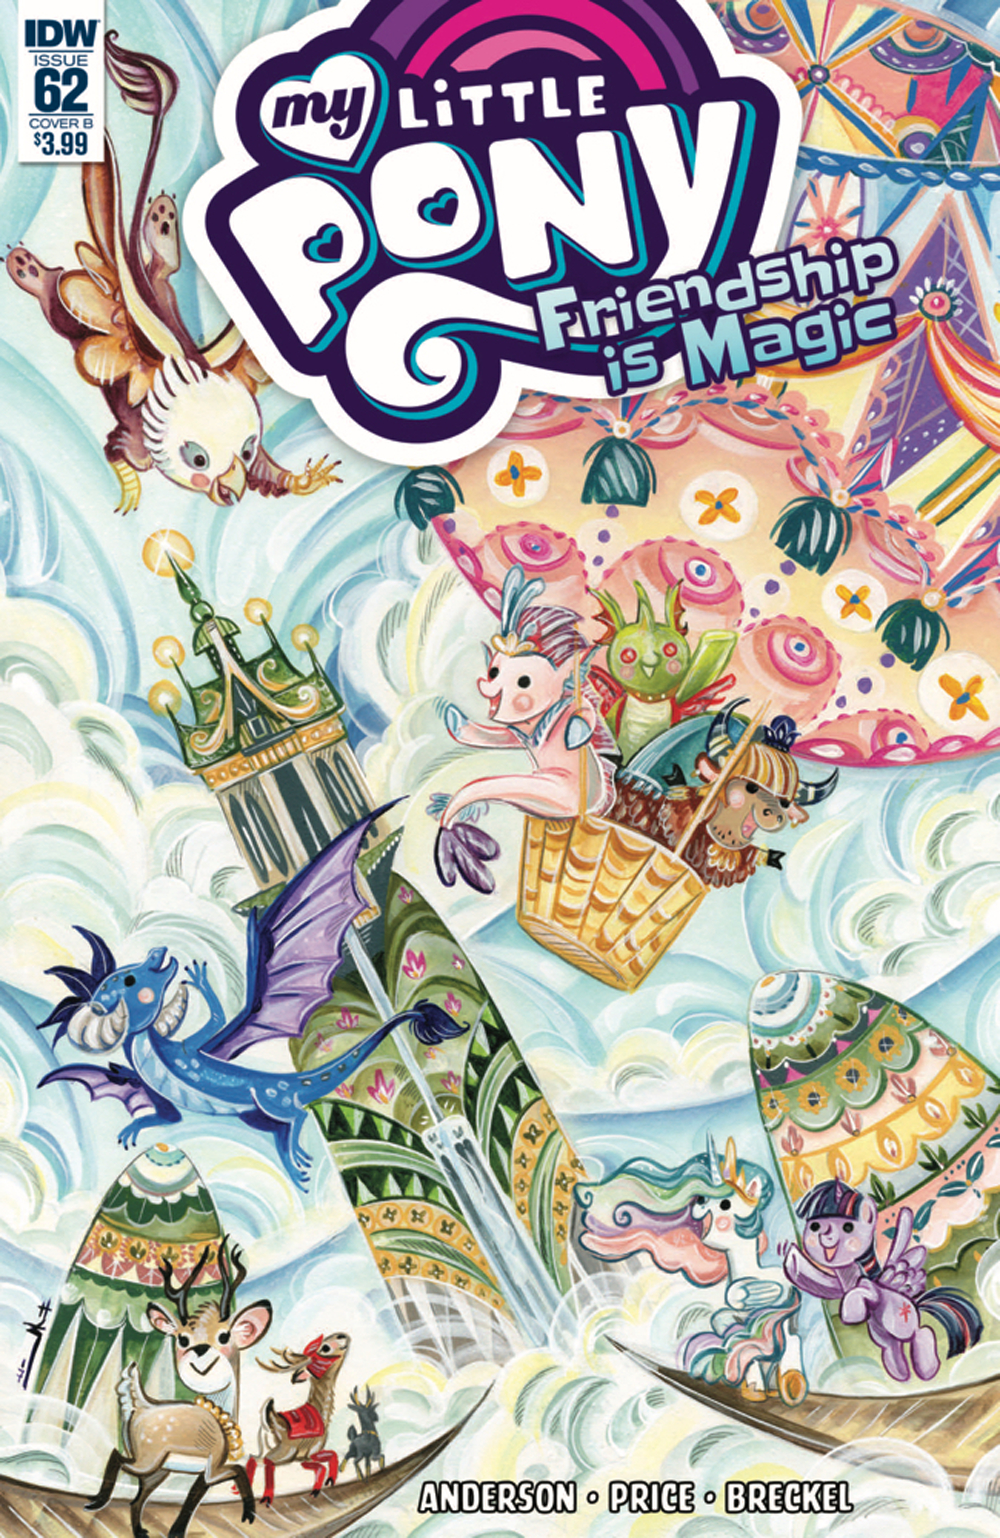 MY LITTLE PONY FRIENDSHIP IS MAGIC #62 CVR B RICHARD